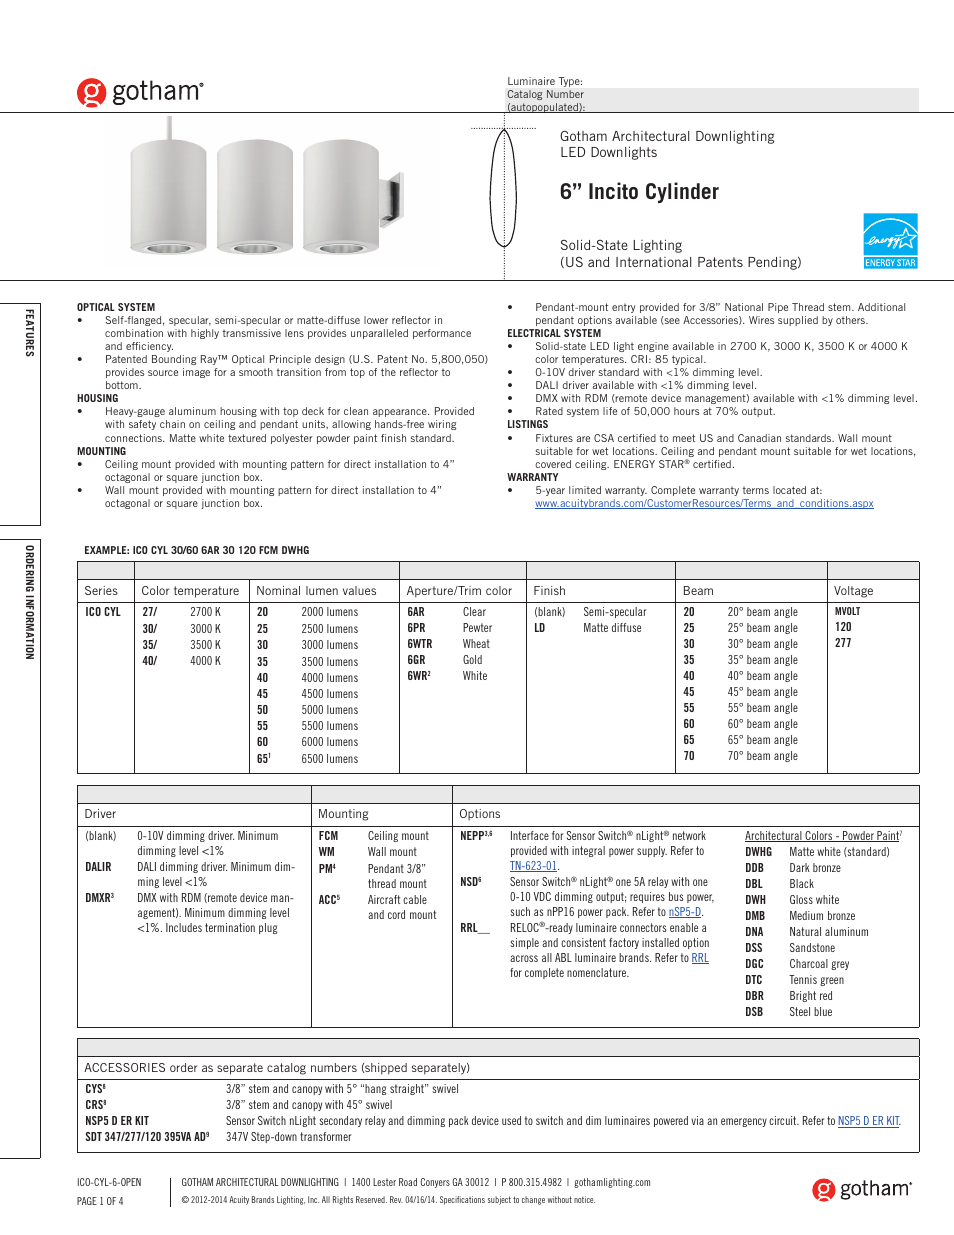 Gotham 6 Incito Cylinder SpecSheet User Manual 4 pages